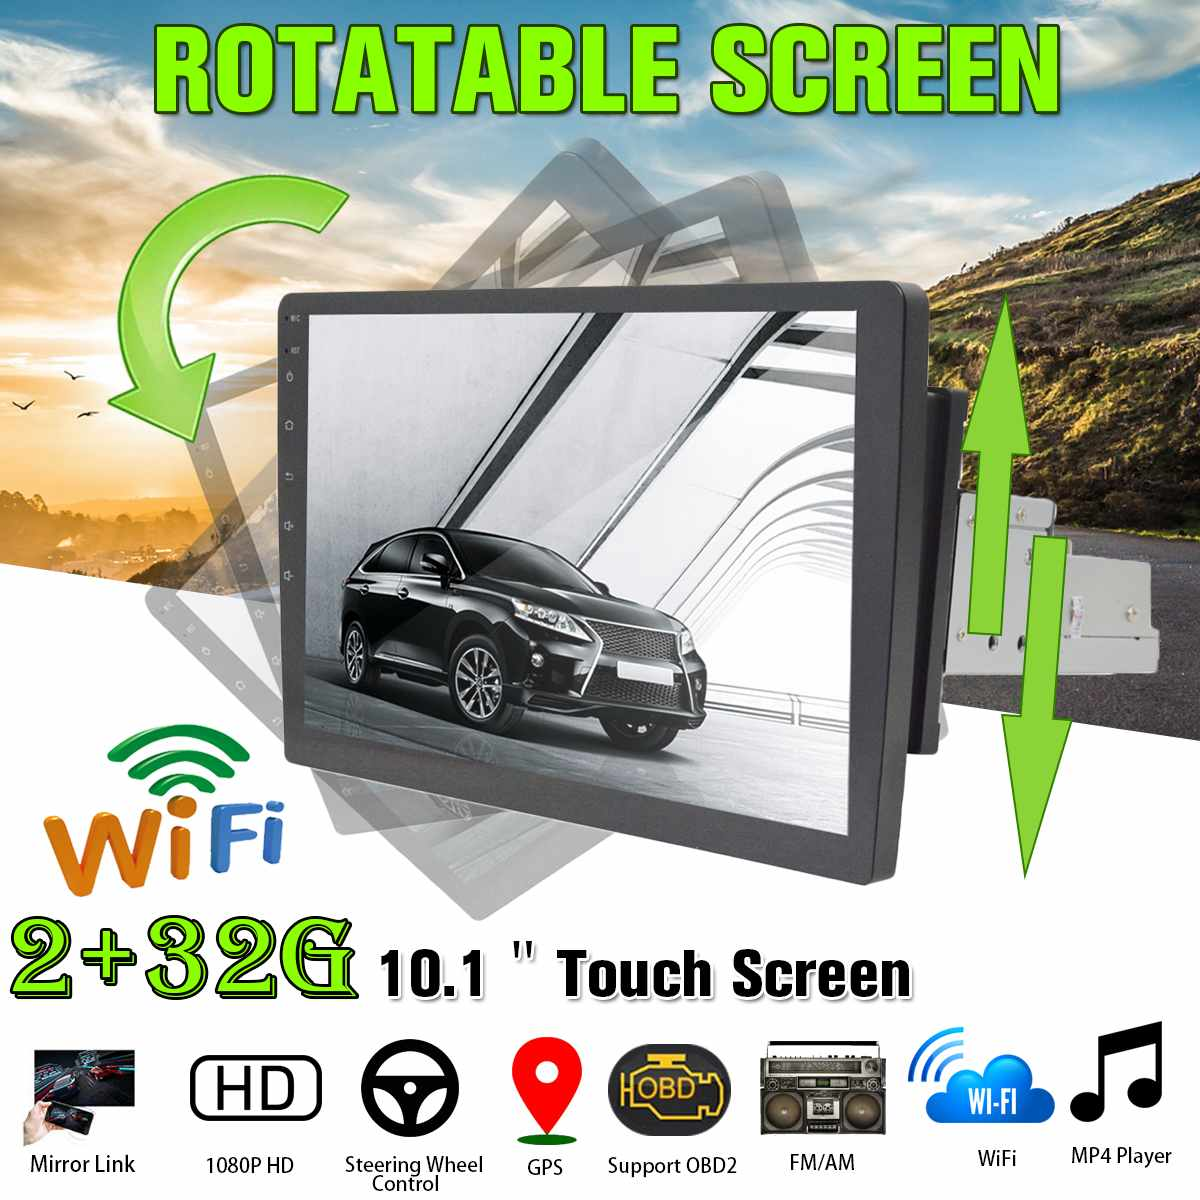 2G+32G Rotatable Car Multimedia Player 10.1for Android 8.0 1Din 8 Core Car Stereo GPS Nav WiFi Radio MP5 Player Universa image